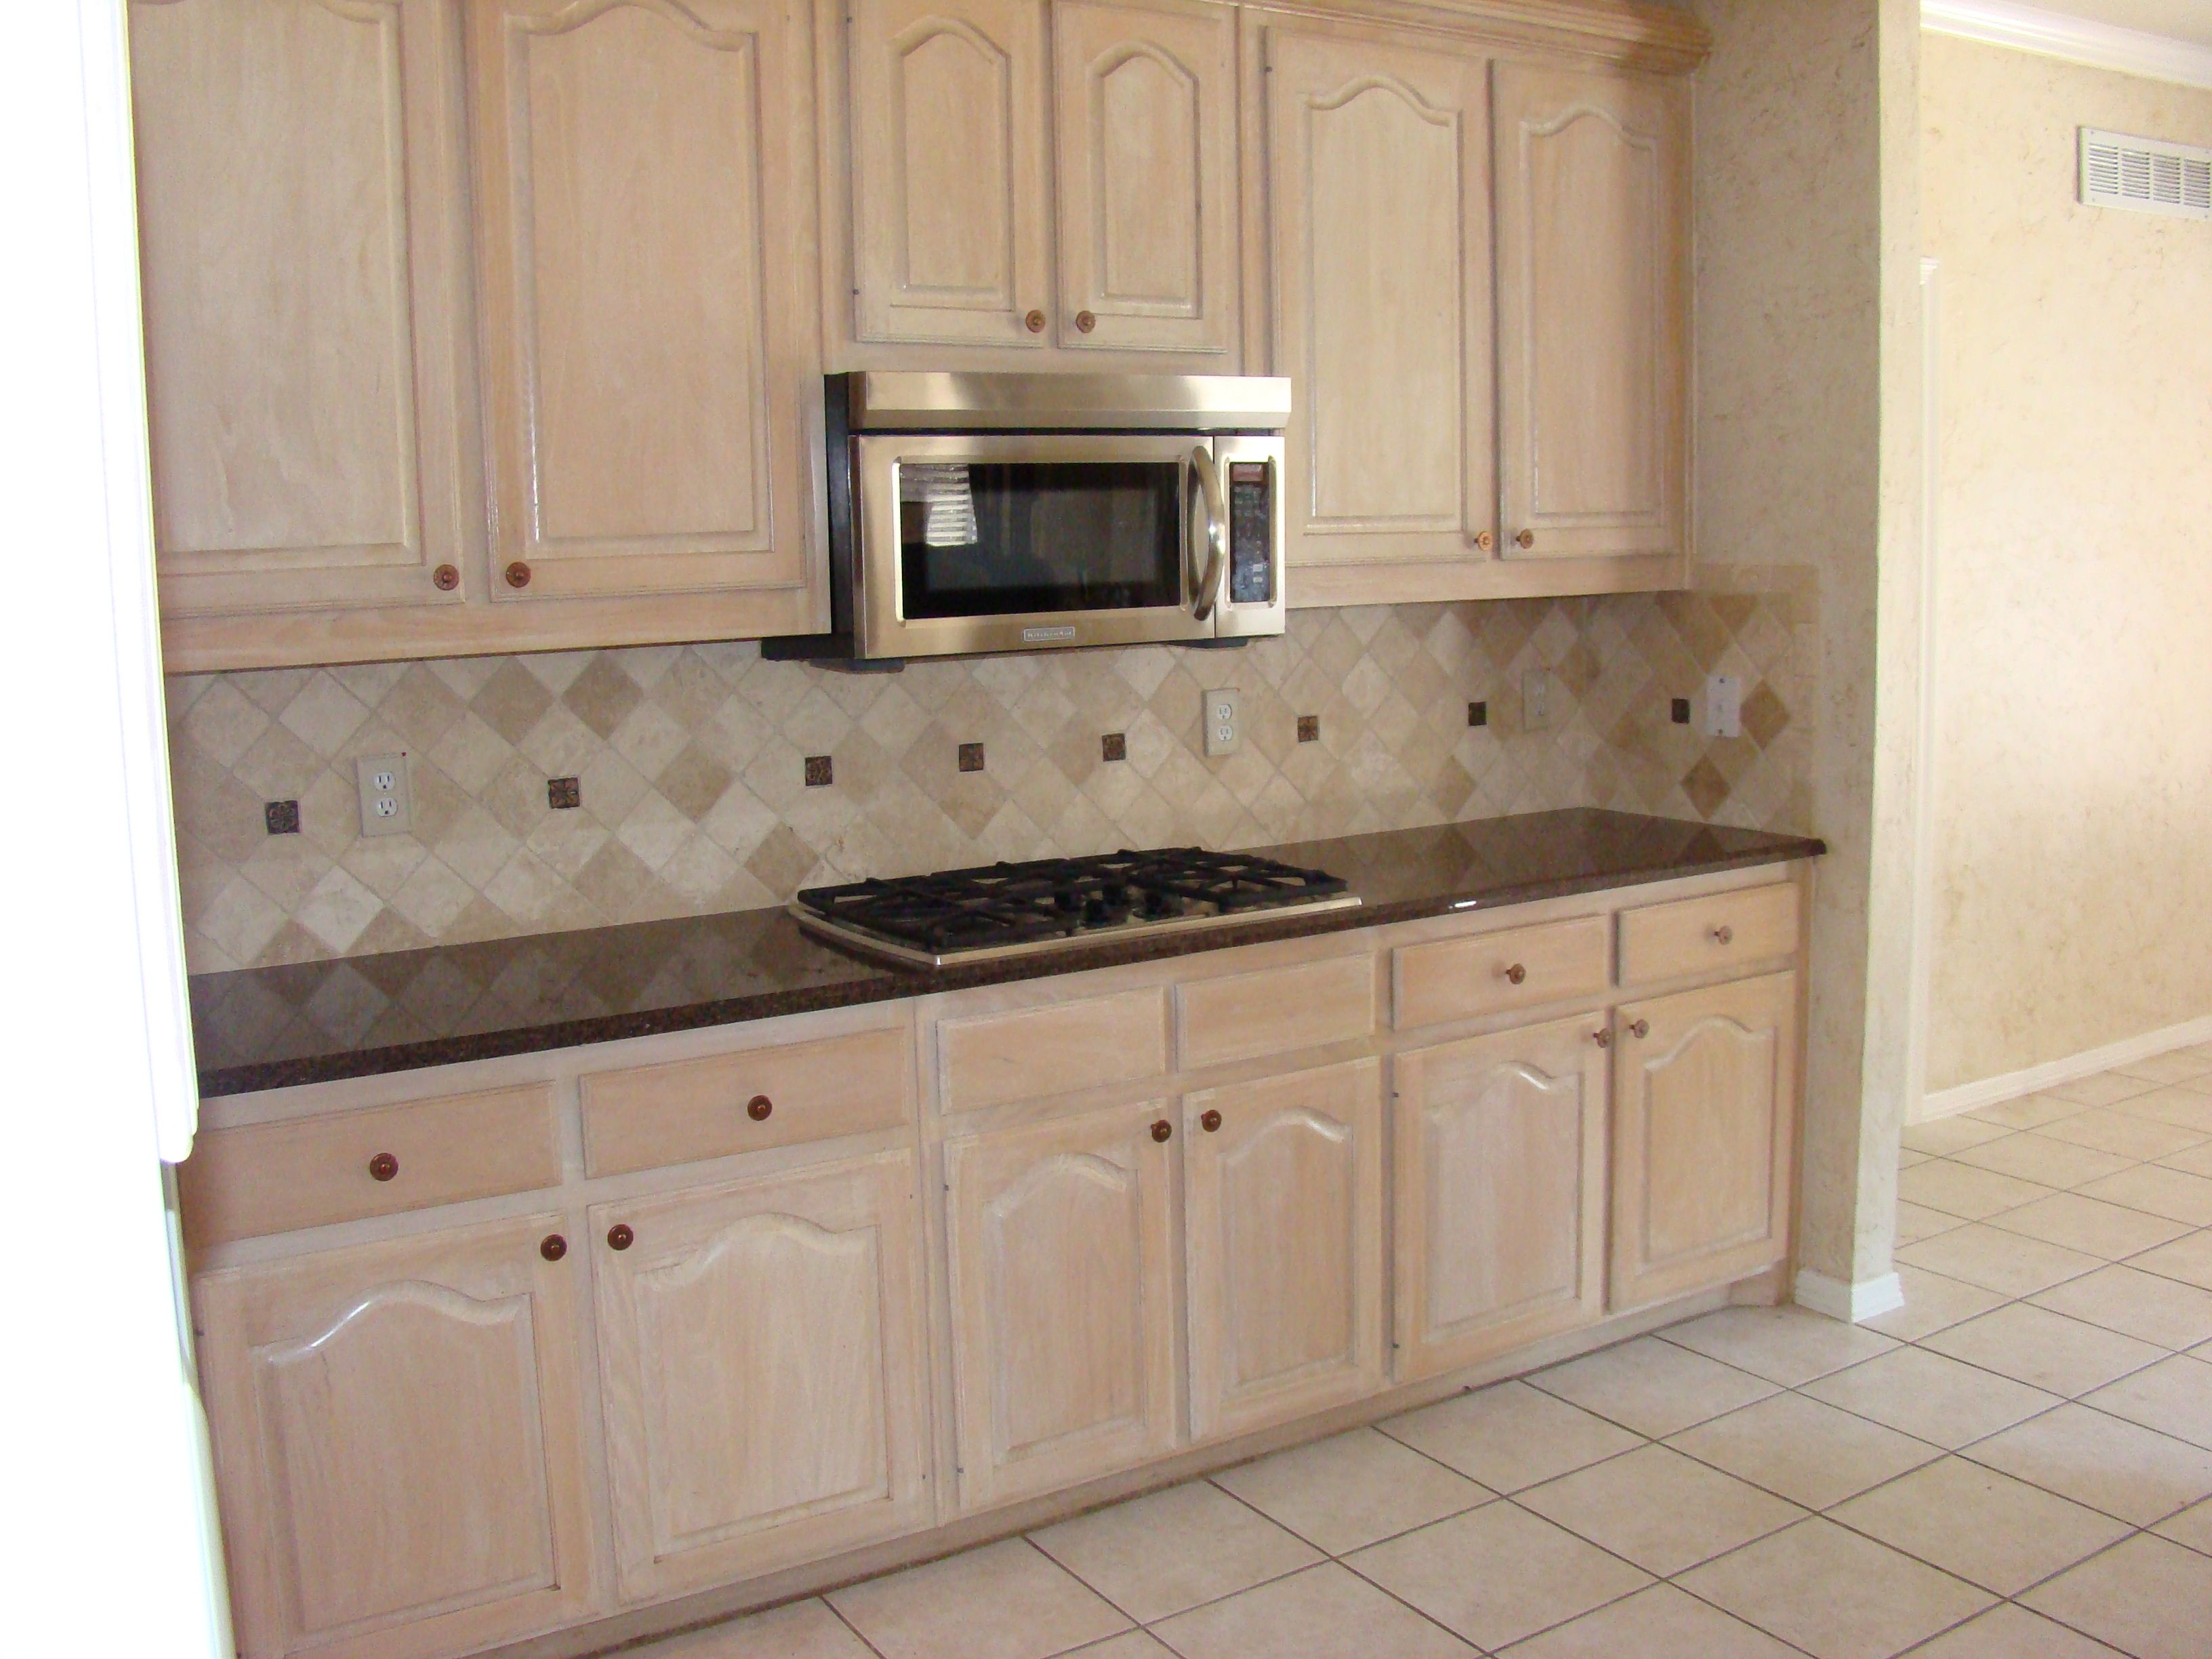 Kitchen Before 2 Jpg 3 264 2 448 Pixels White Oak Kitchen Oak Kitchen Cabinets Country Kitchen Cabinets